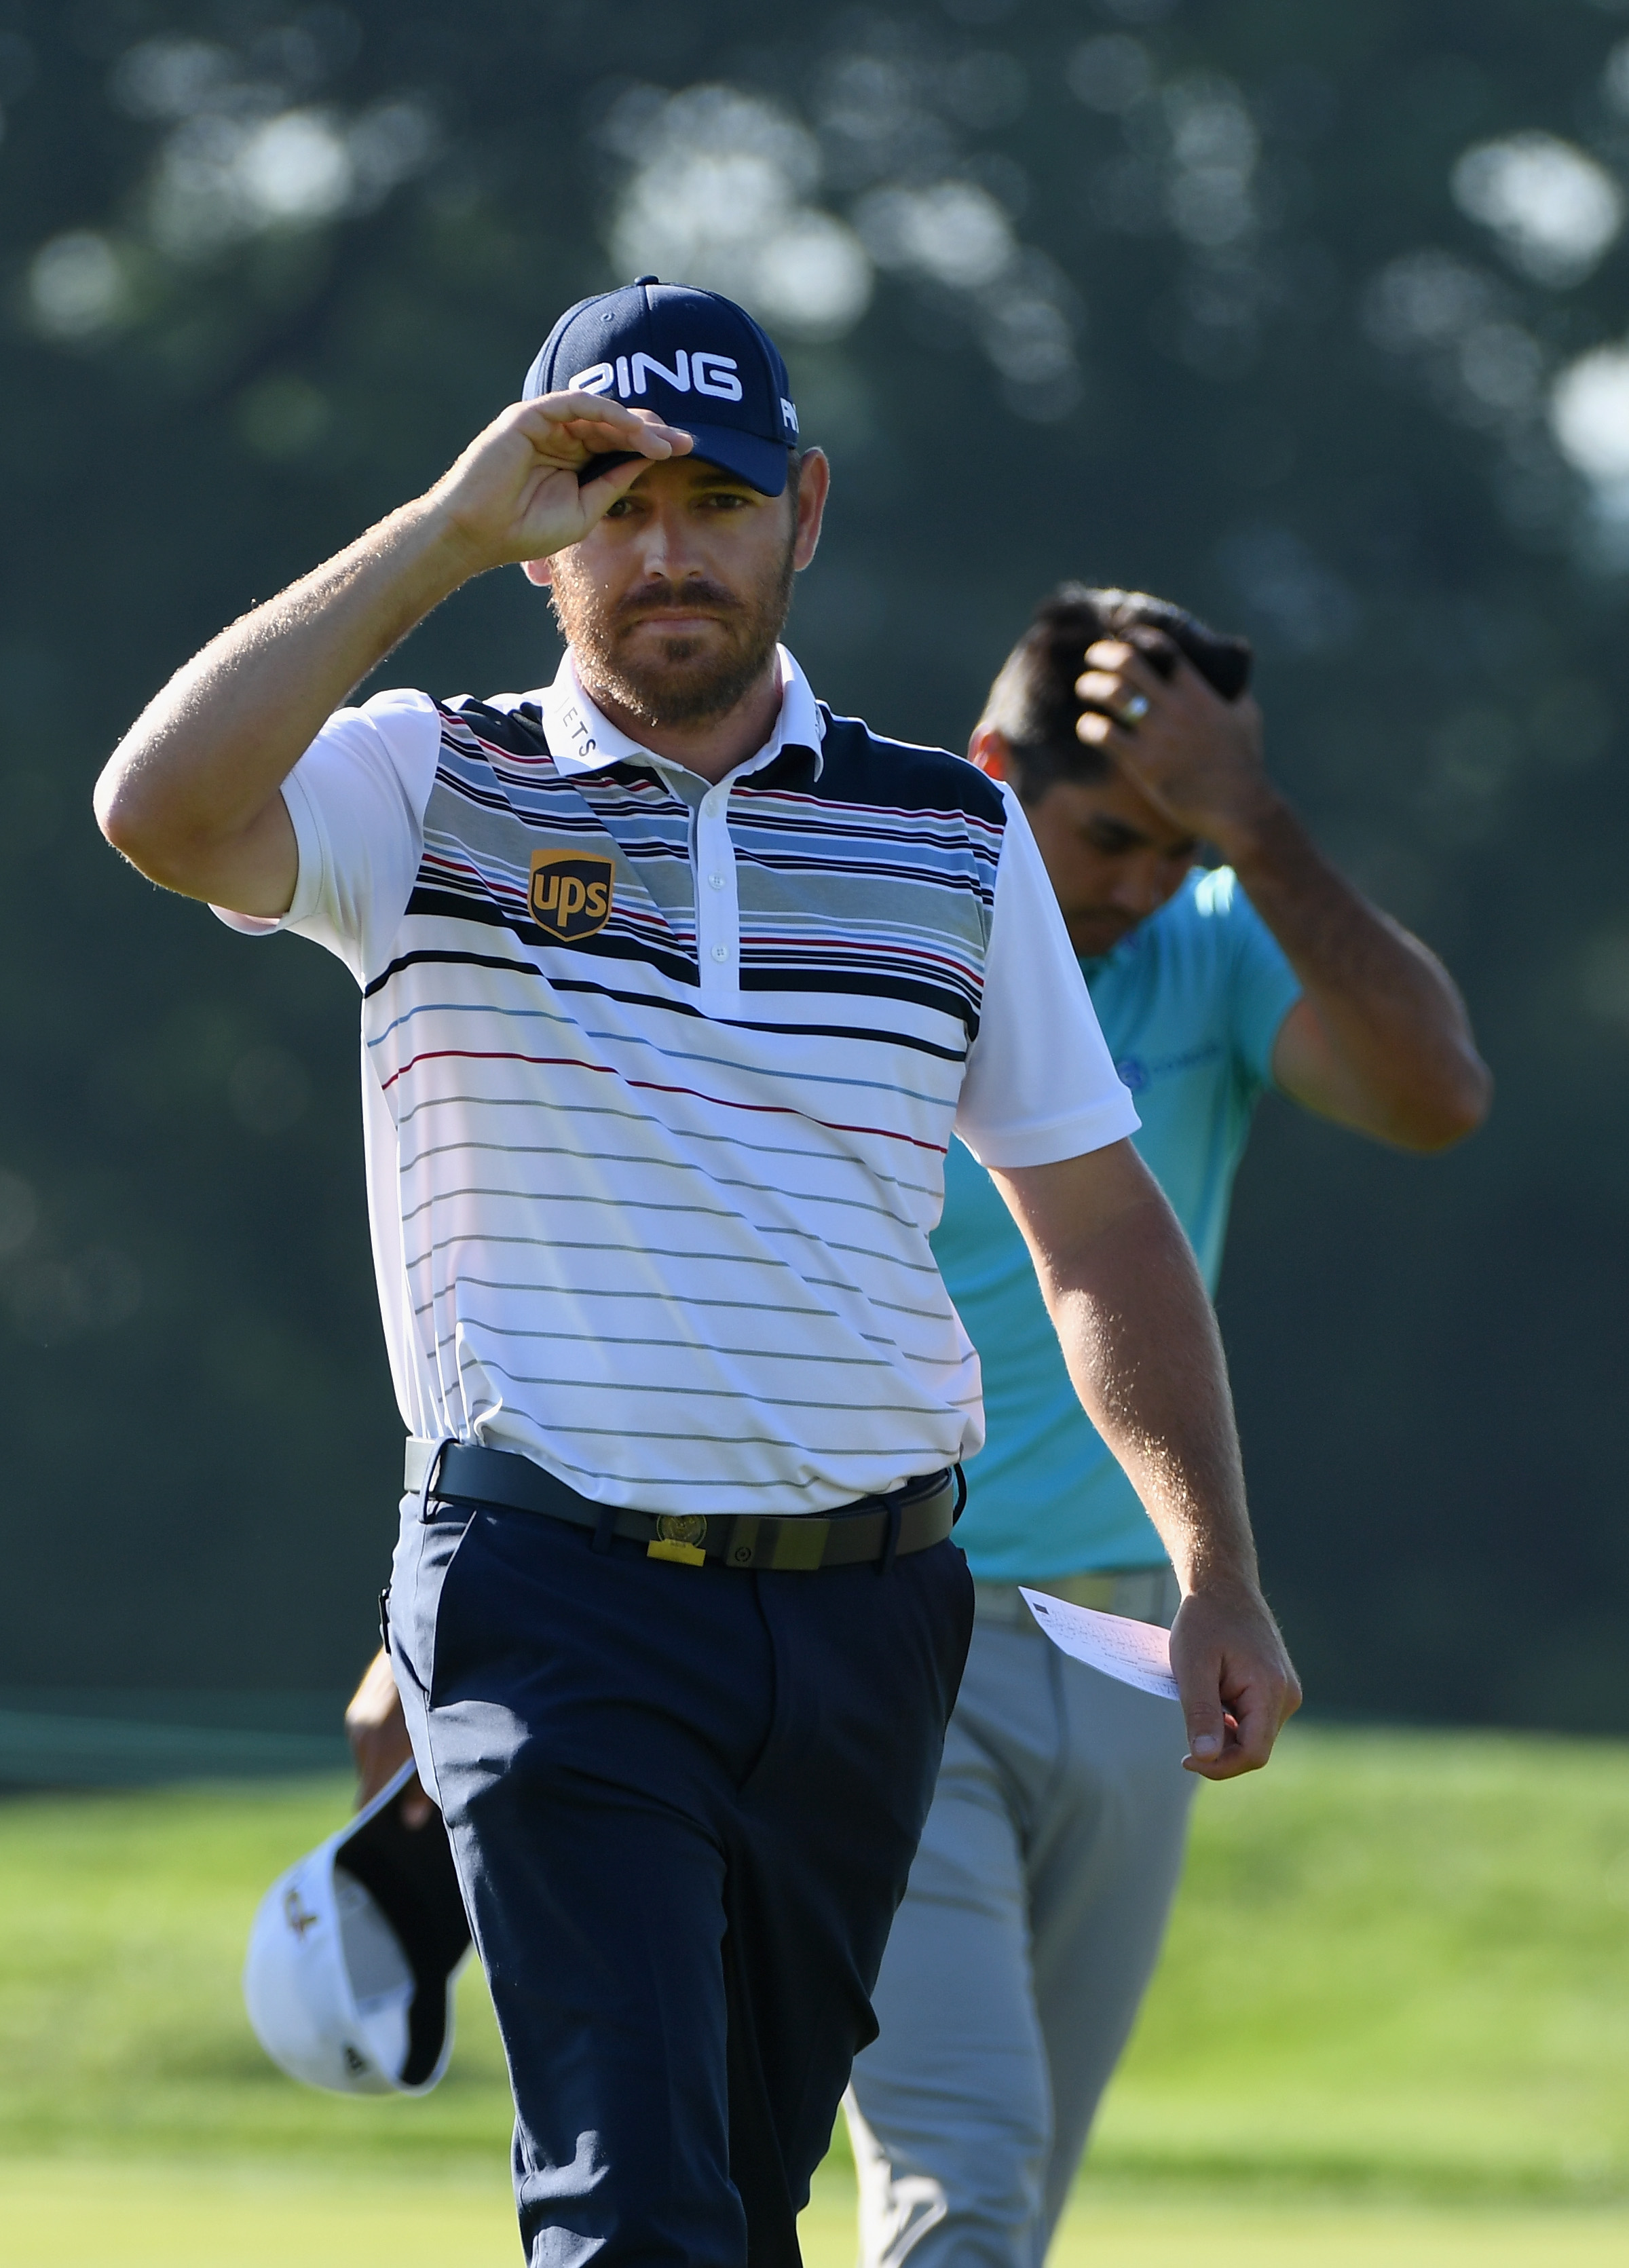 Louis Oosthuizen finished off a round of 5-under 65 early Saturday in the second round of the U.S. Open.